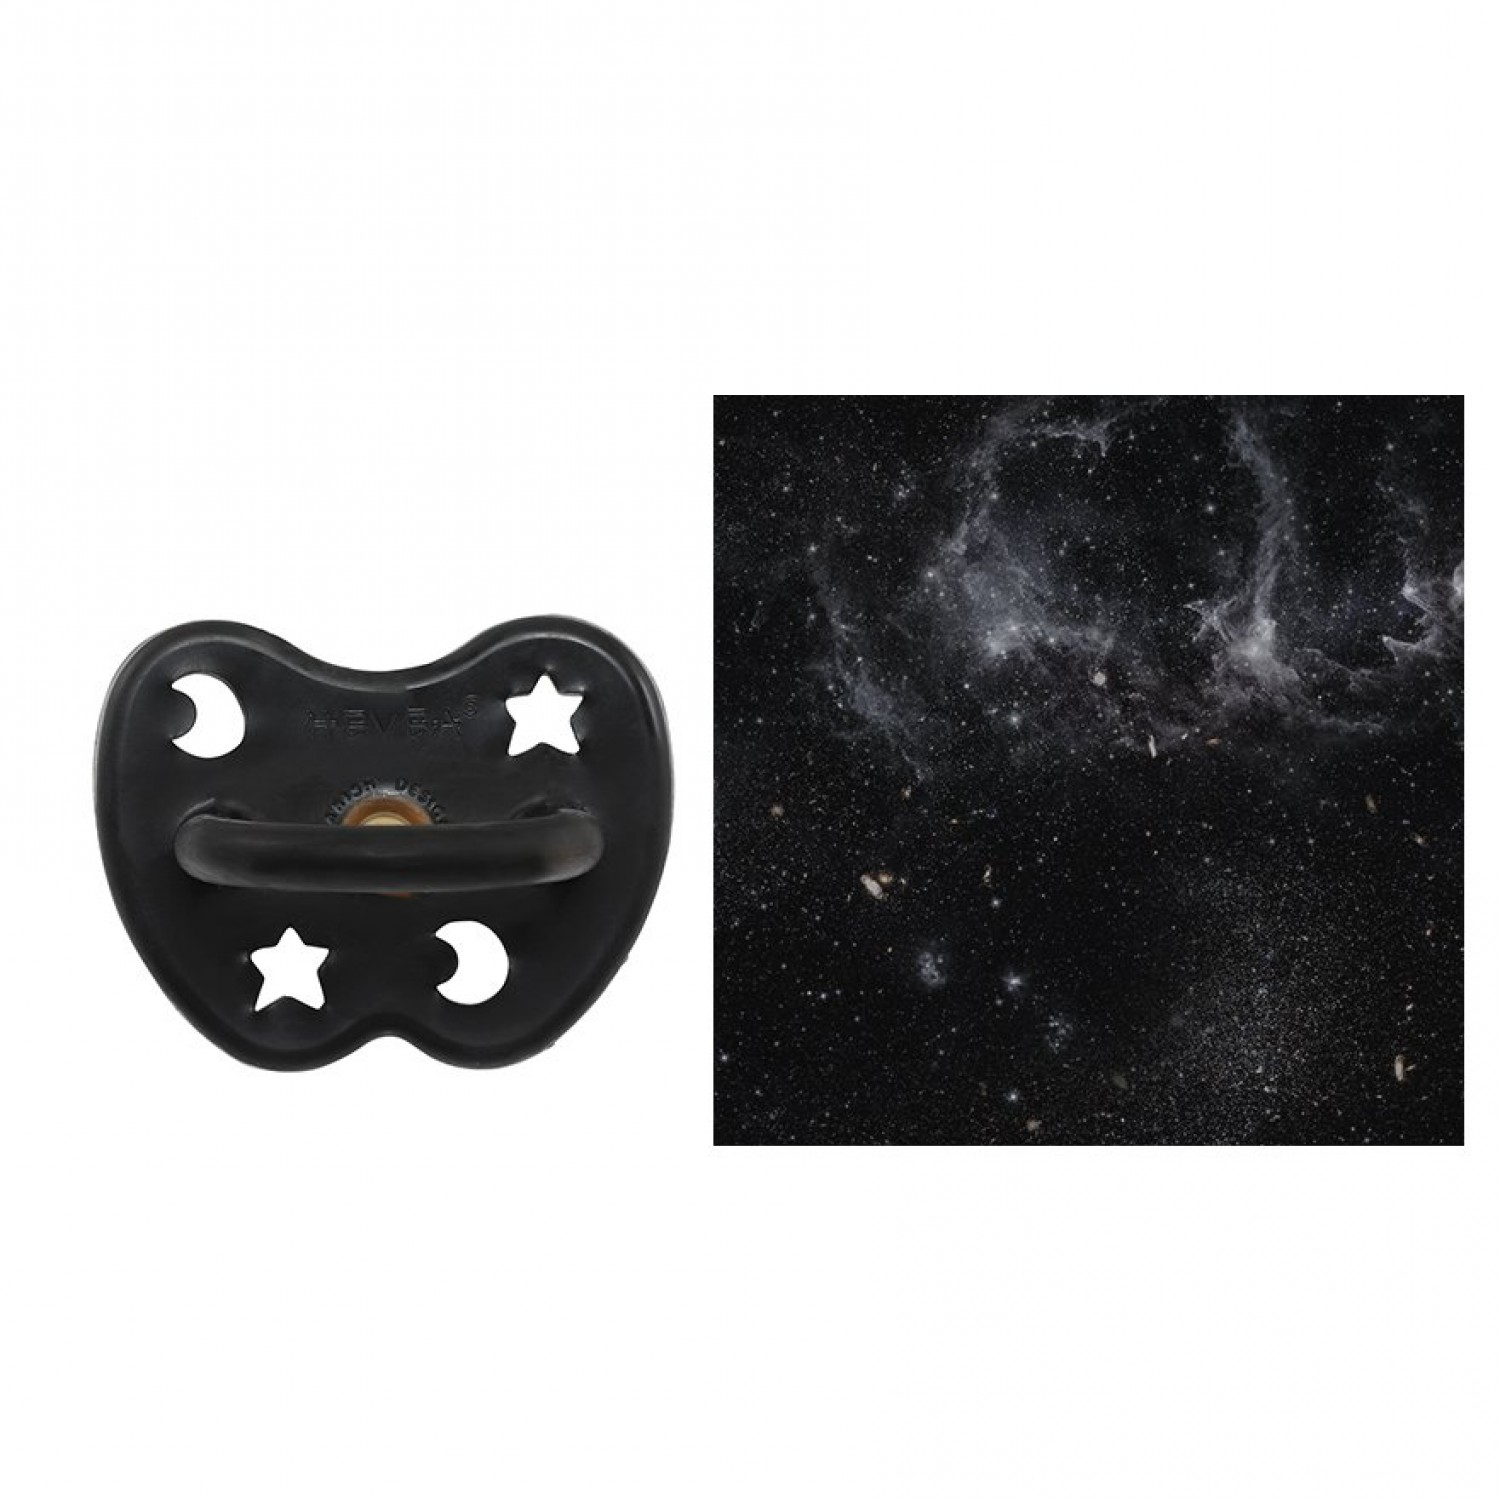 Hevea Pacifier, Outer Space Black ORTHODONTIC 3-36 month